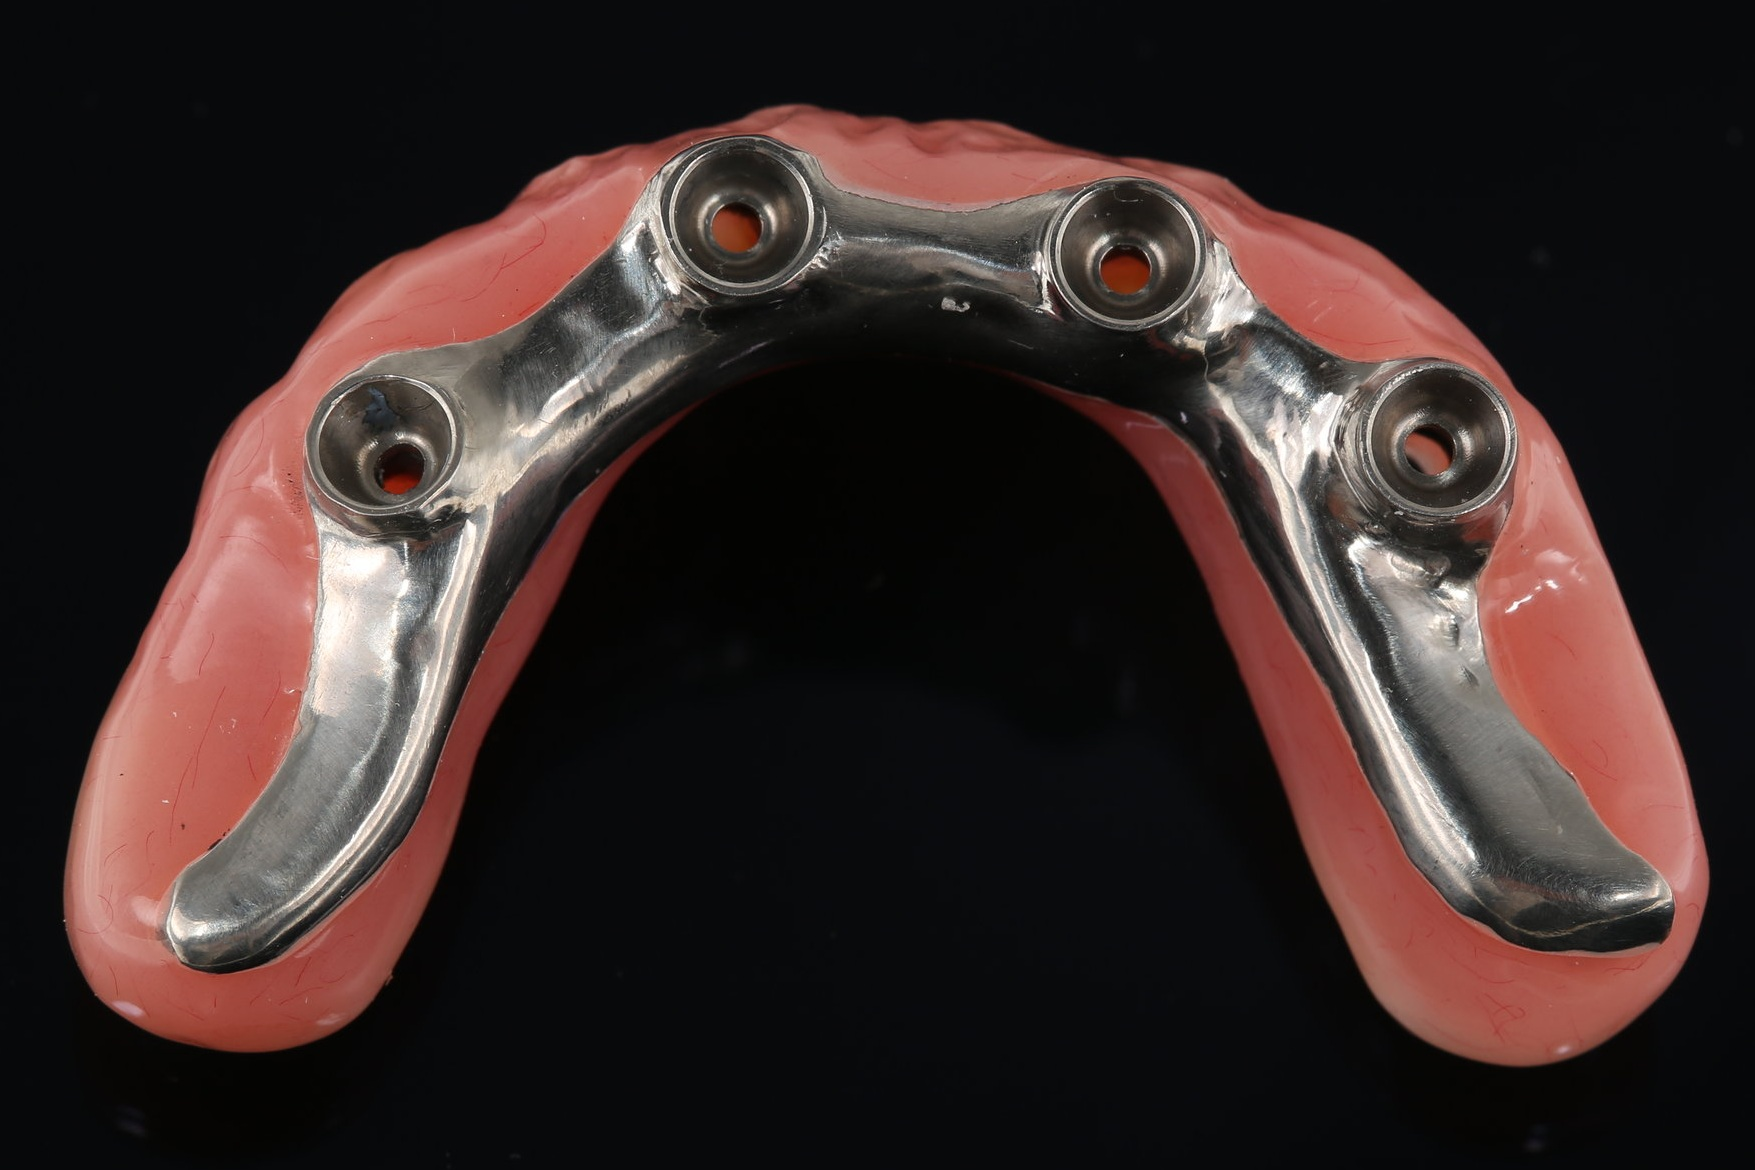 Disadvantages - Tooth fracture, occurs quite often needing repairs and adjustmentsStains over timeWears, therefore need replacement every 5 to 10 yearsAnalogue technique, difficult to re-do or to duplicate if needed